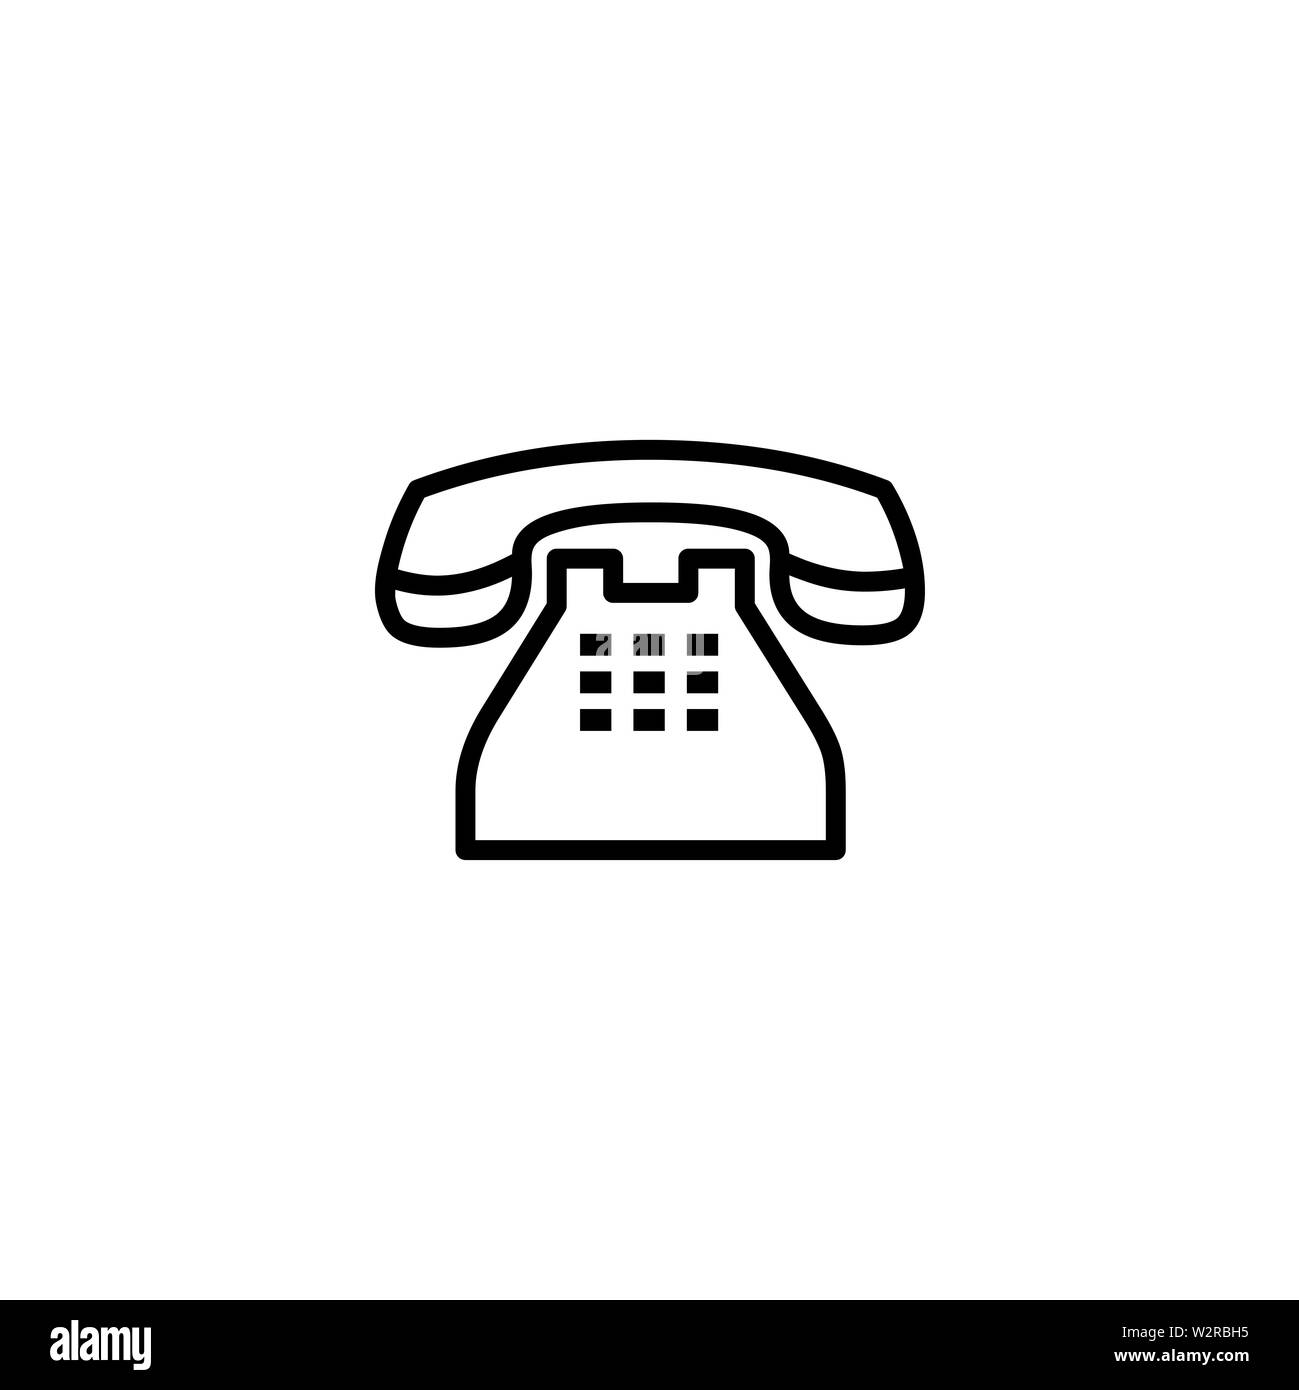 Telephone Line Icon In Flat Style Vector For Apps, UI, Websites. Black Icon Vector Illustration. Stock Photo